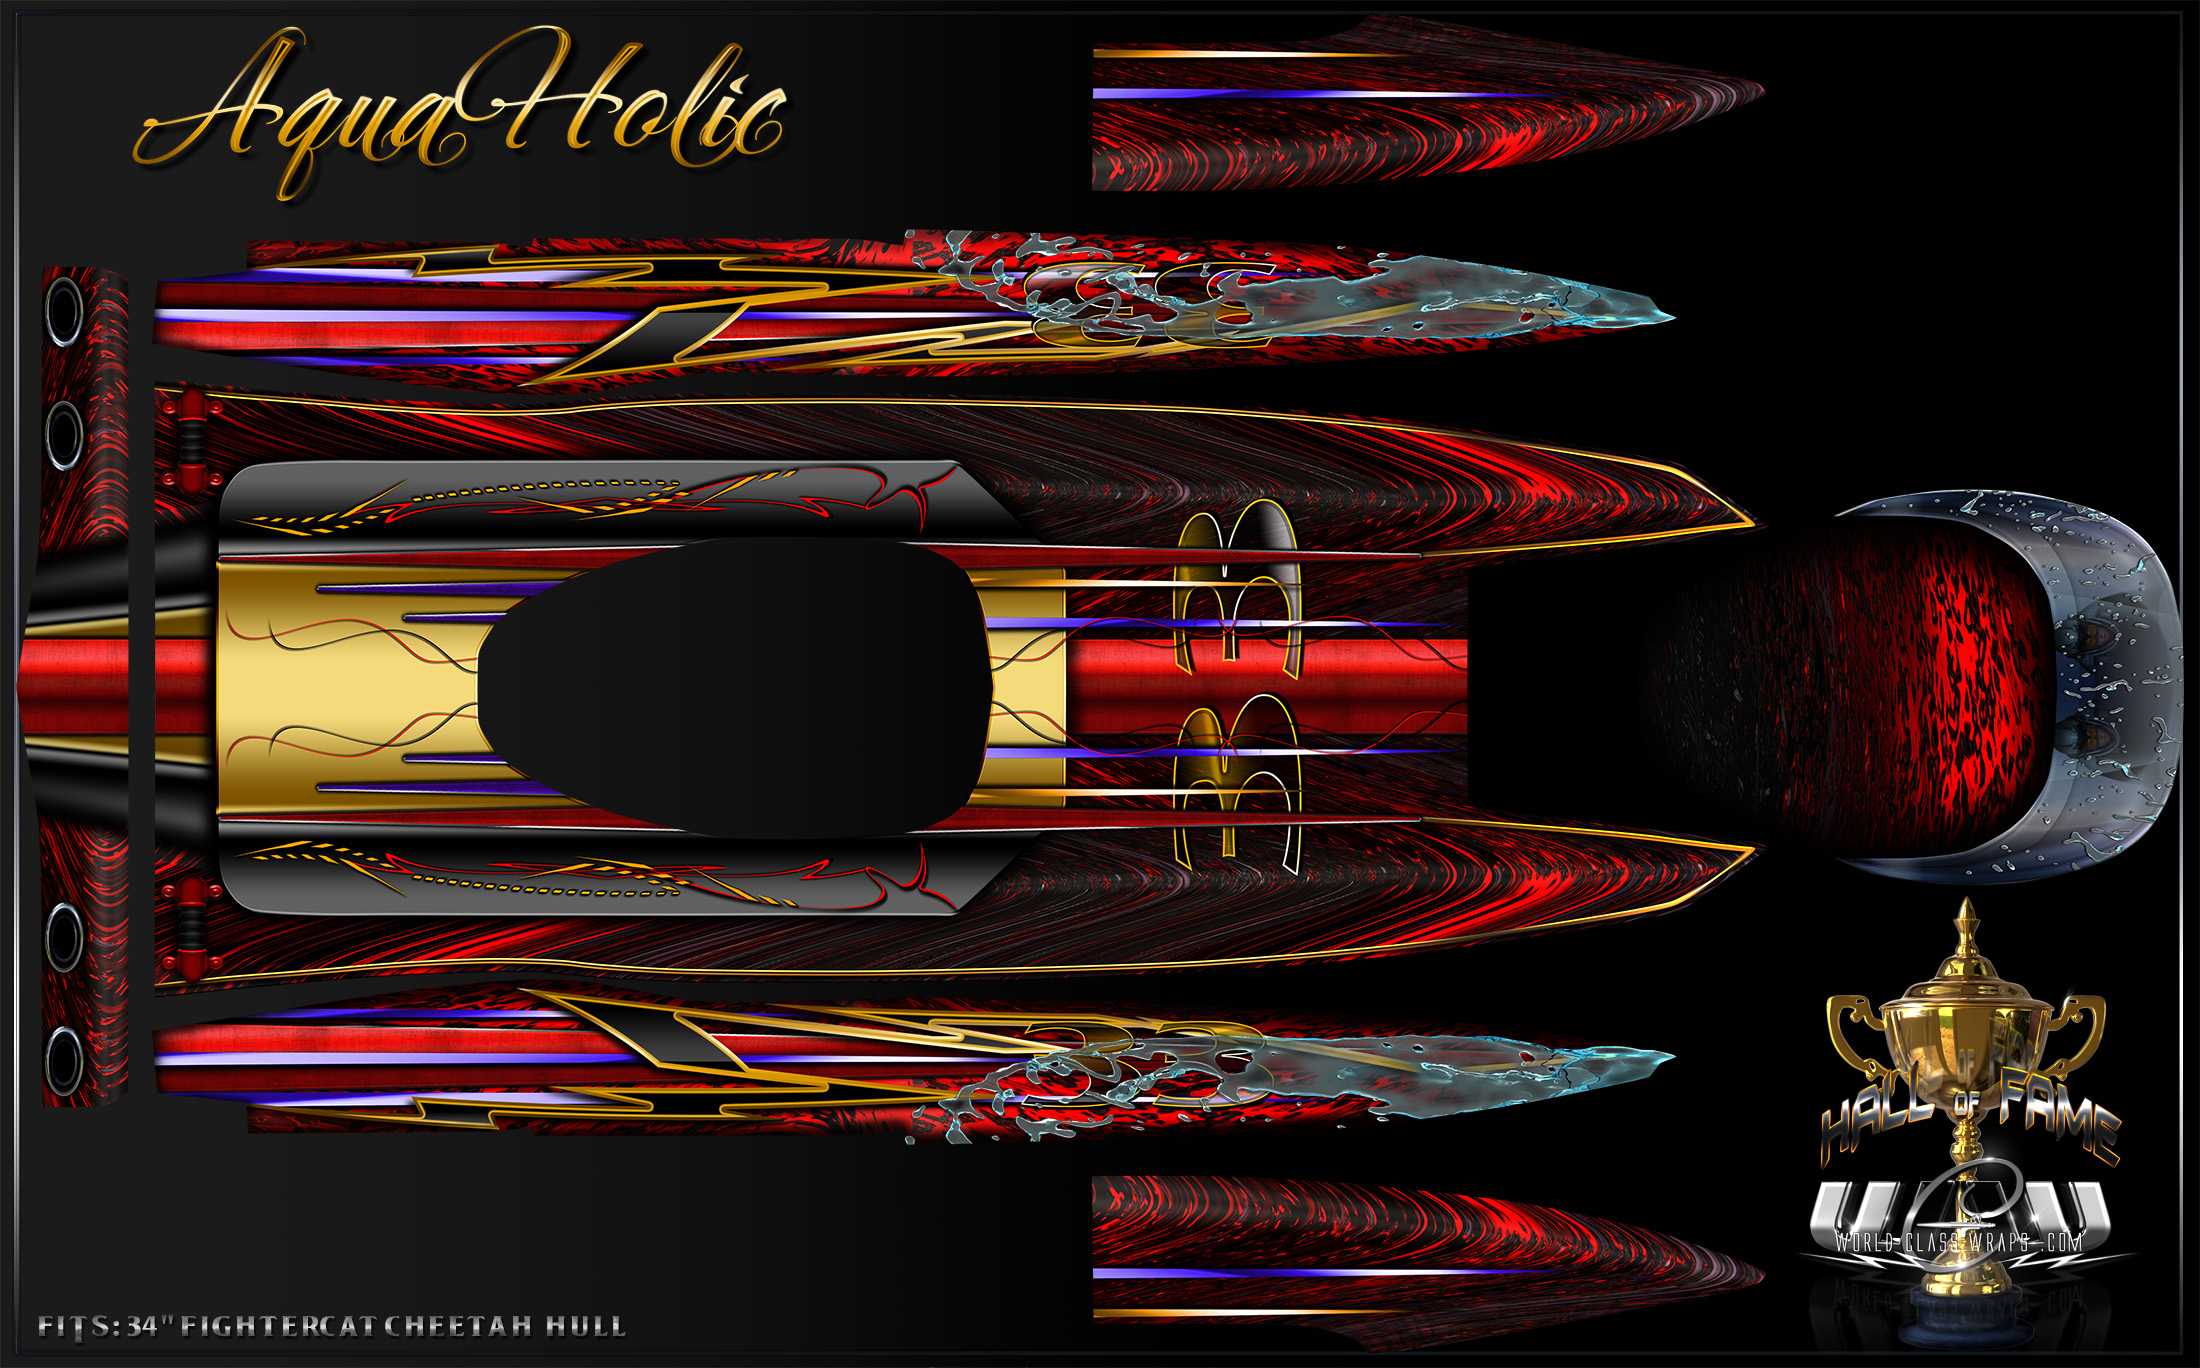 Custom Aquaholic Graphics For  Inch Fightercat Cheetah Rc Hull - Vinyl stickers for rc boats